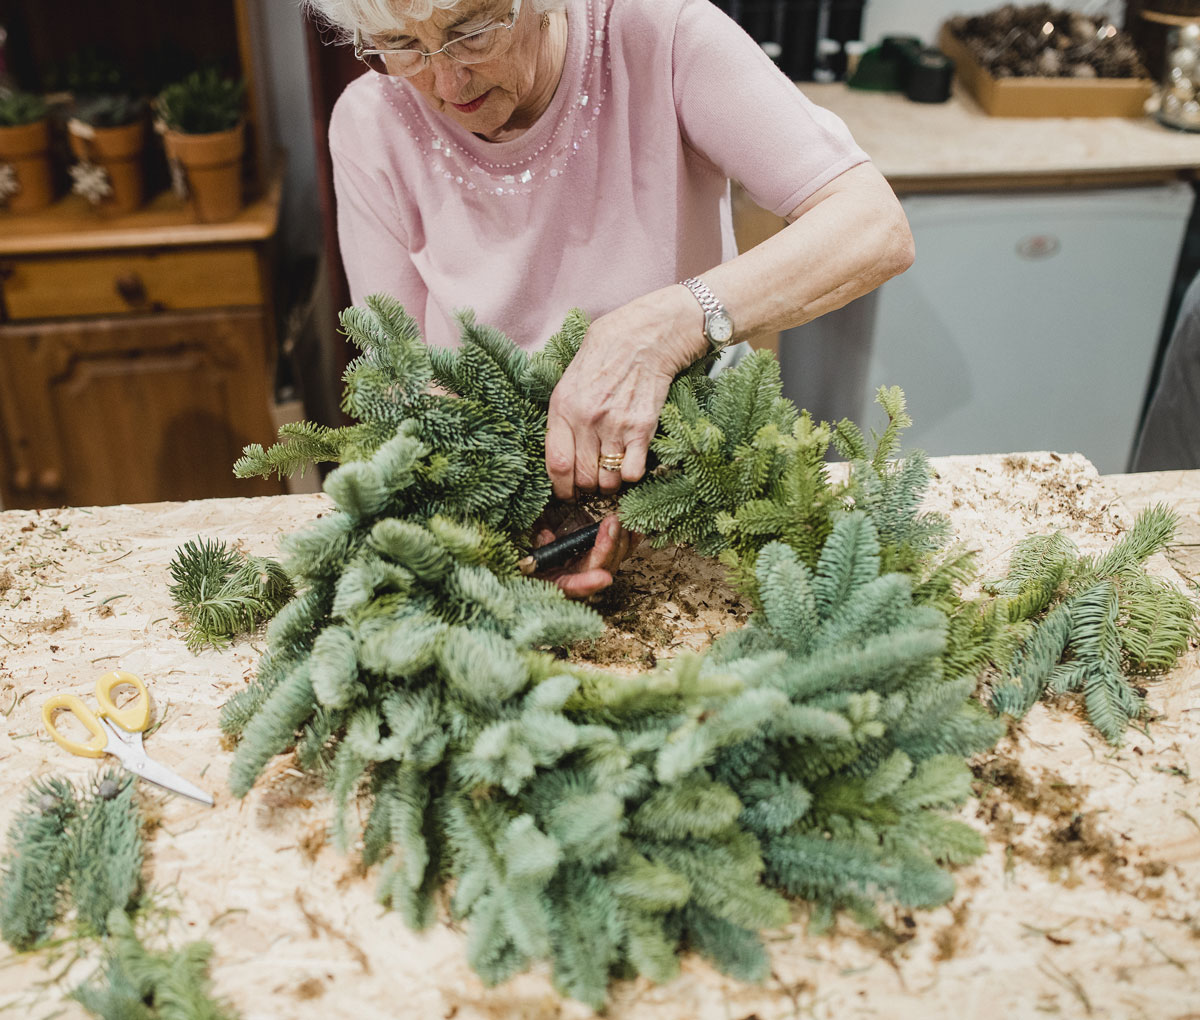 How to Relieve Senior Loneliness During the Holidays